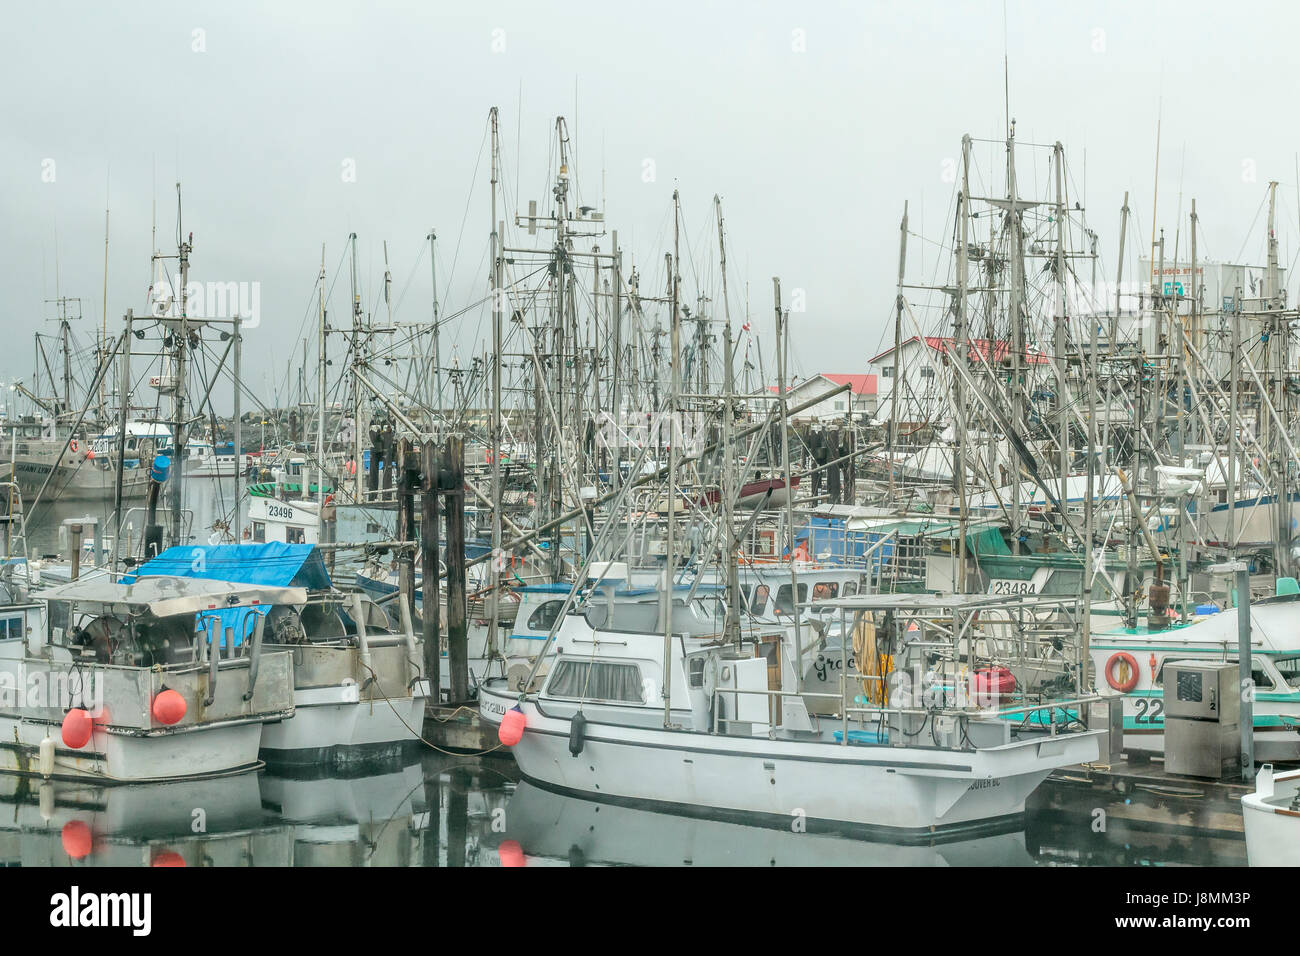 Commercial fish boats stay in port on an overcast winter day at French Creek, near Parksville on Vancouver Island, - Stock Image